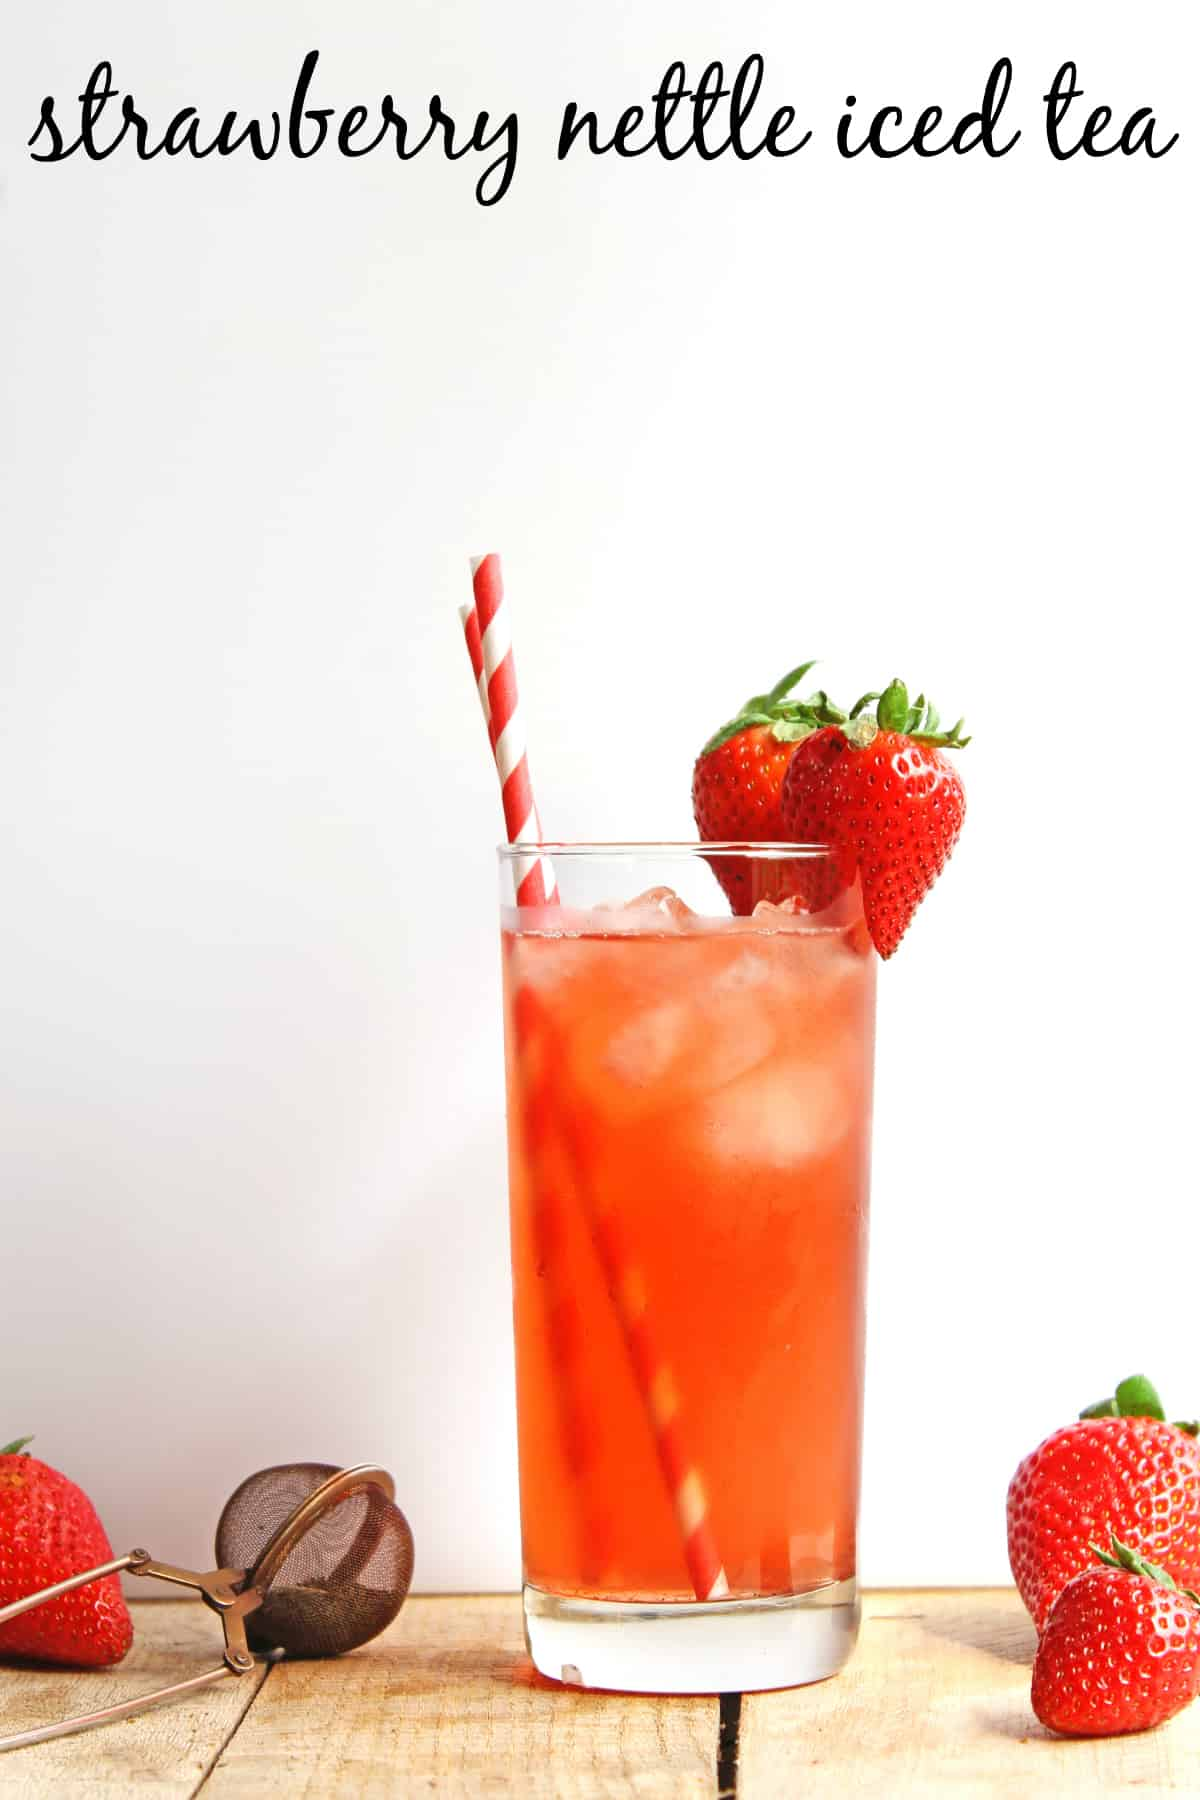 Fresh strawberry nettle iced tea recipe! Super clean and simple recipe with only 3 ingredients! Vegan, vegetarian, gluten free, sugar free, Paleo, low glycemic index. So healthy, so delicious!